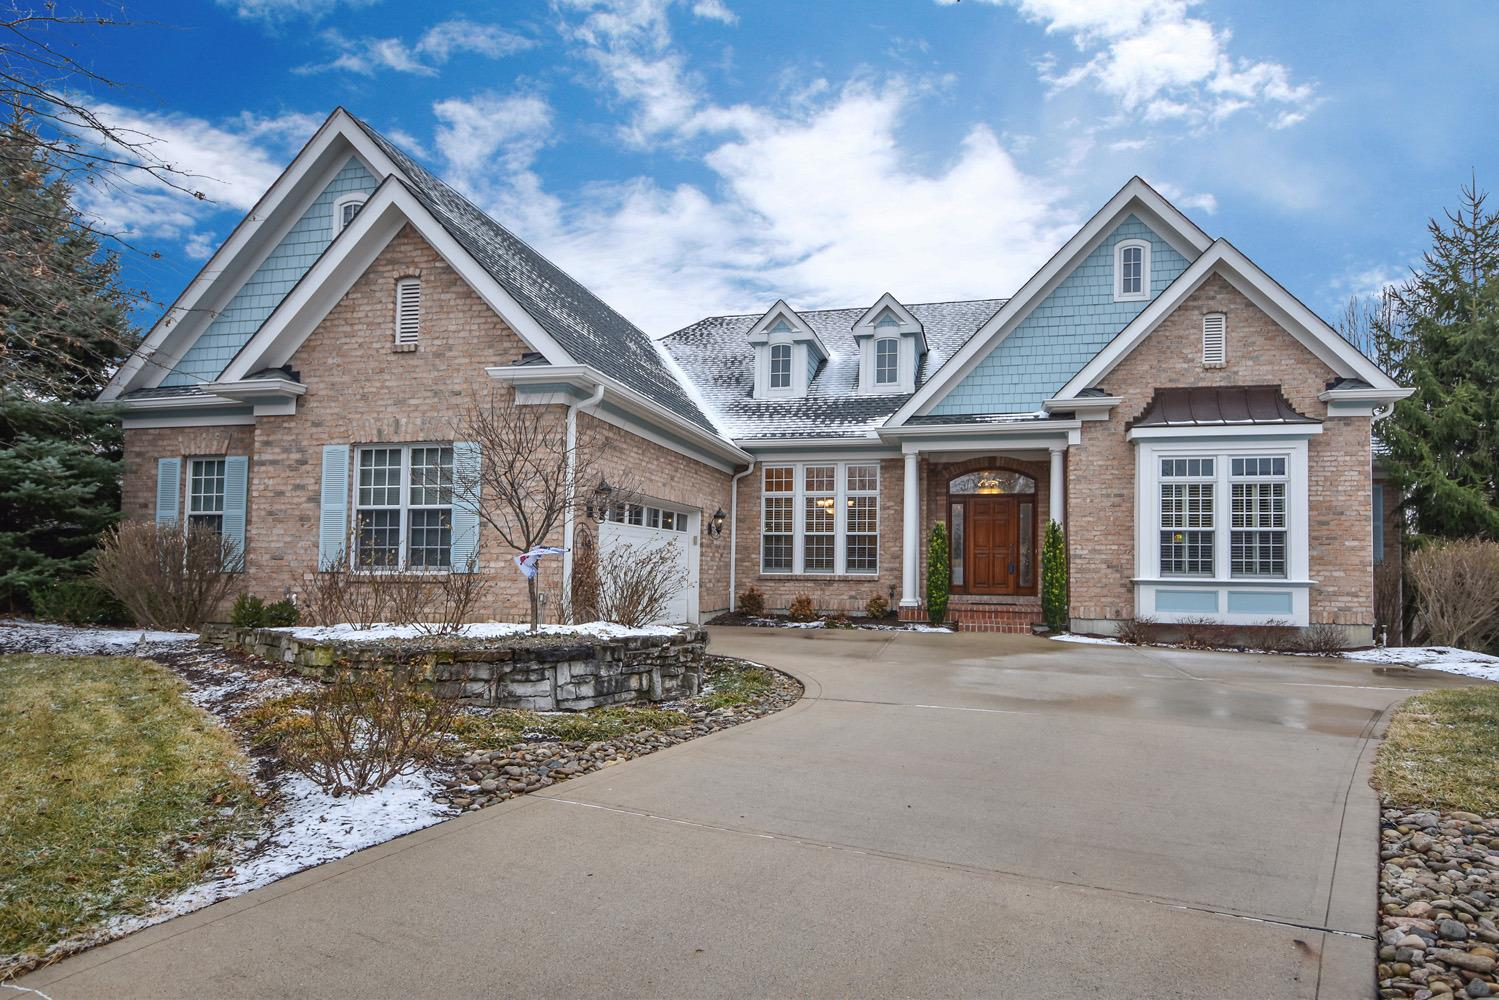 457 Ivy Trails Dr Union Twp. (Clermont), OH